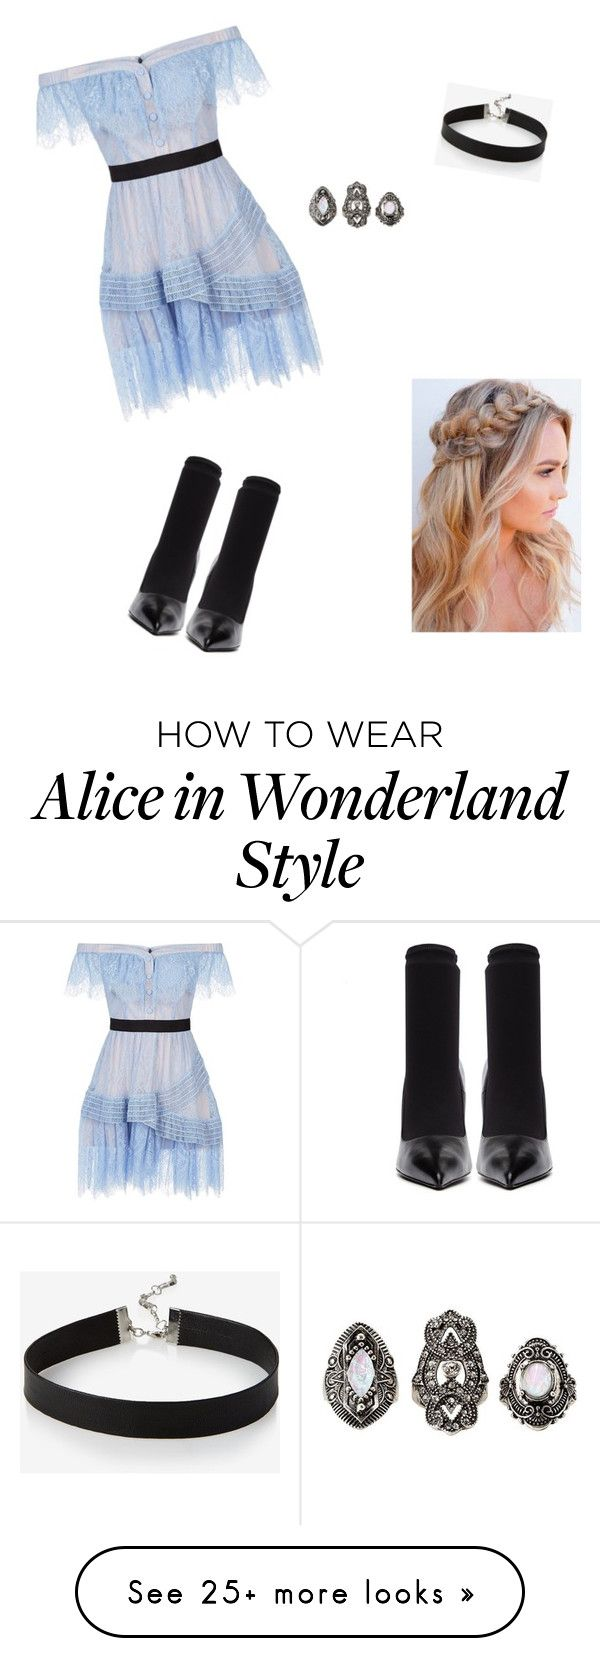 From Alice in Wonderland to Balenciaga